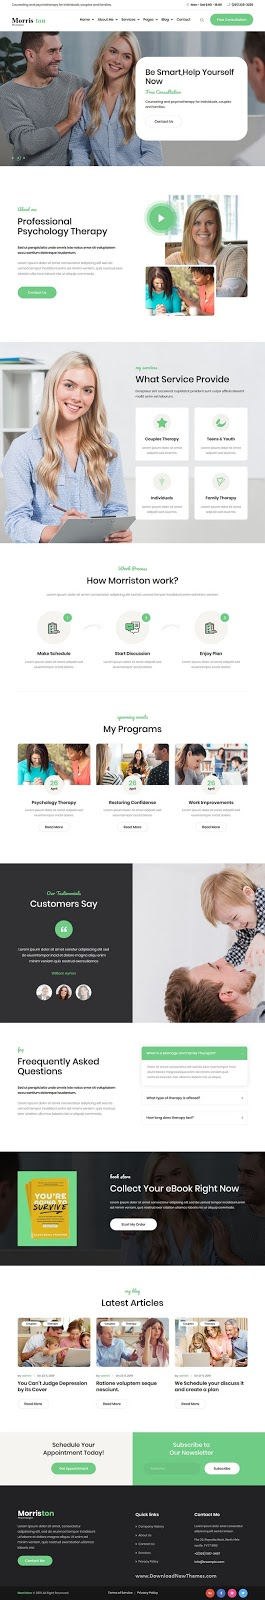 Best Psychologist & Counseling Website Theme